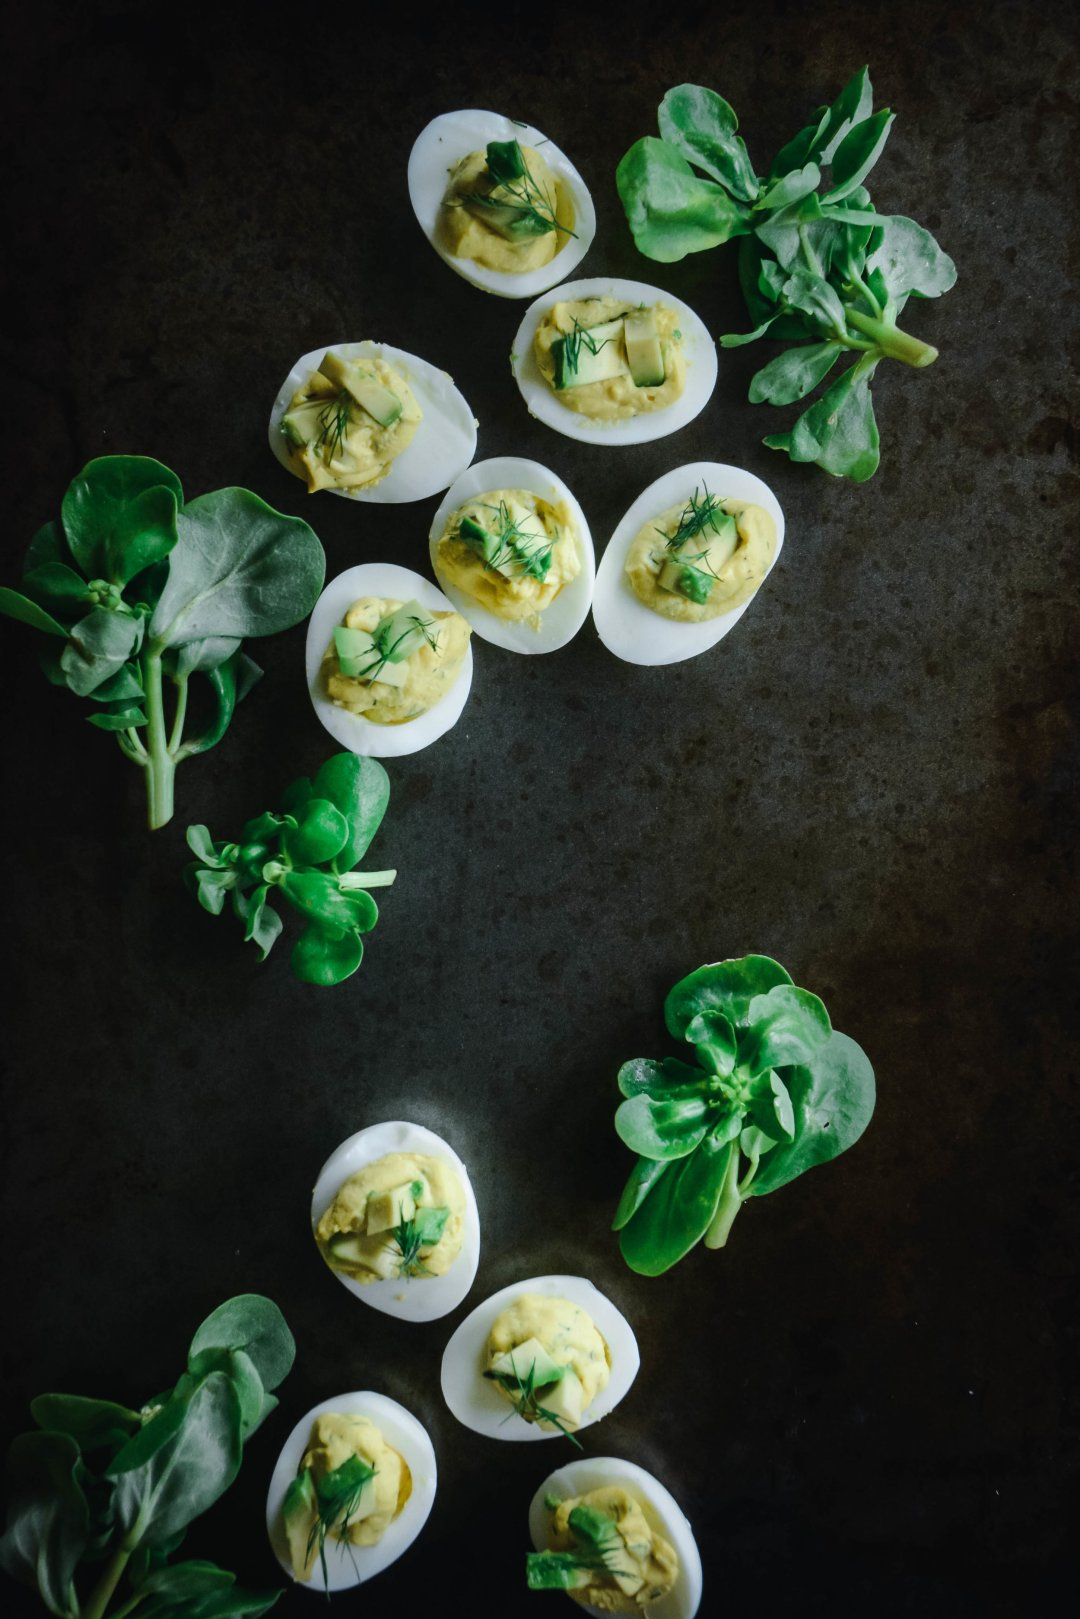 deviled eggs on table with greens